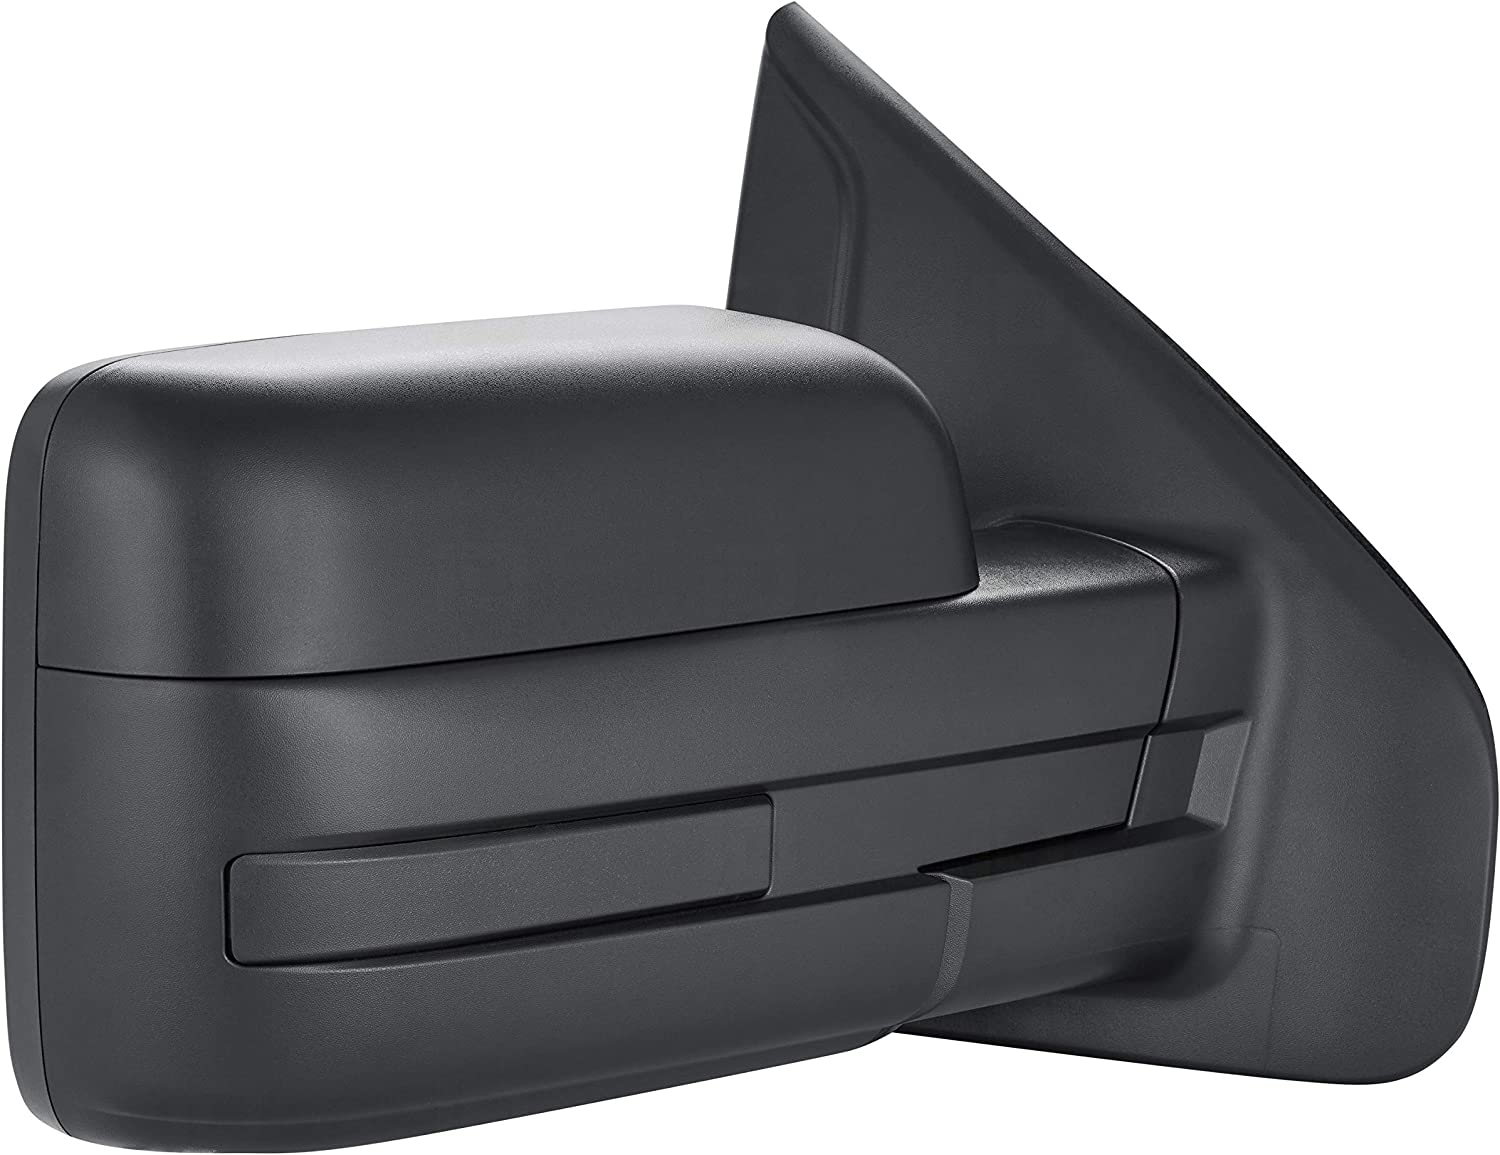 FO1321347 NEW PASSENGER SIDE MANUAL DOOR MIRROR FOR FORD F-150 2009 2010